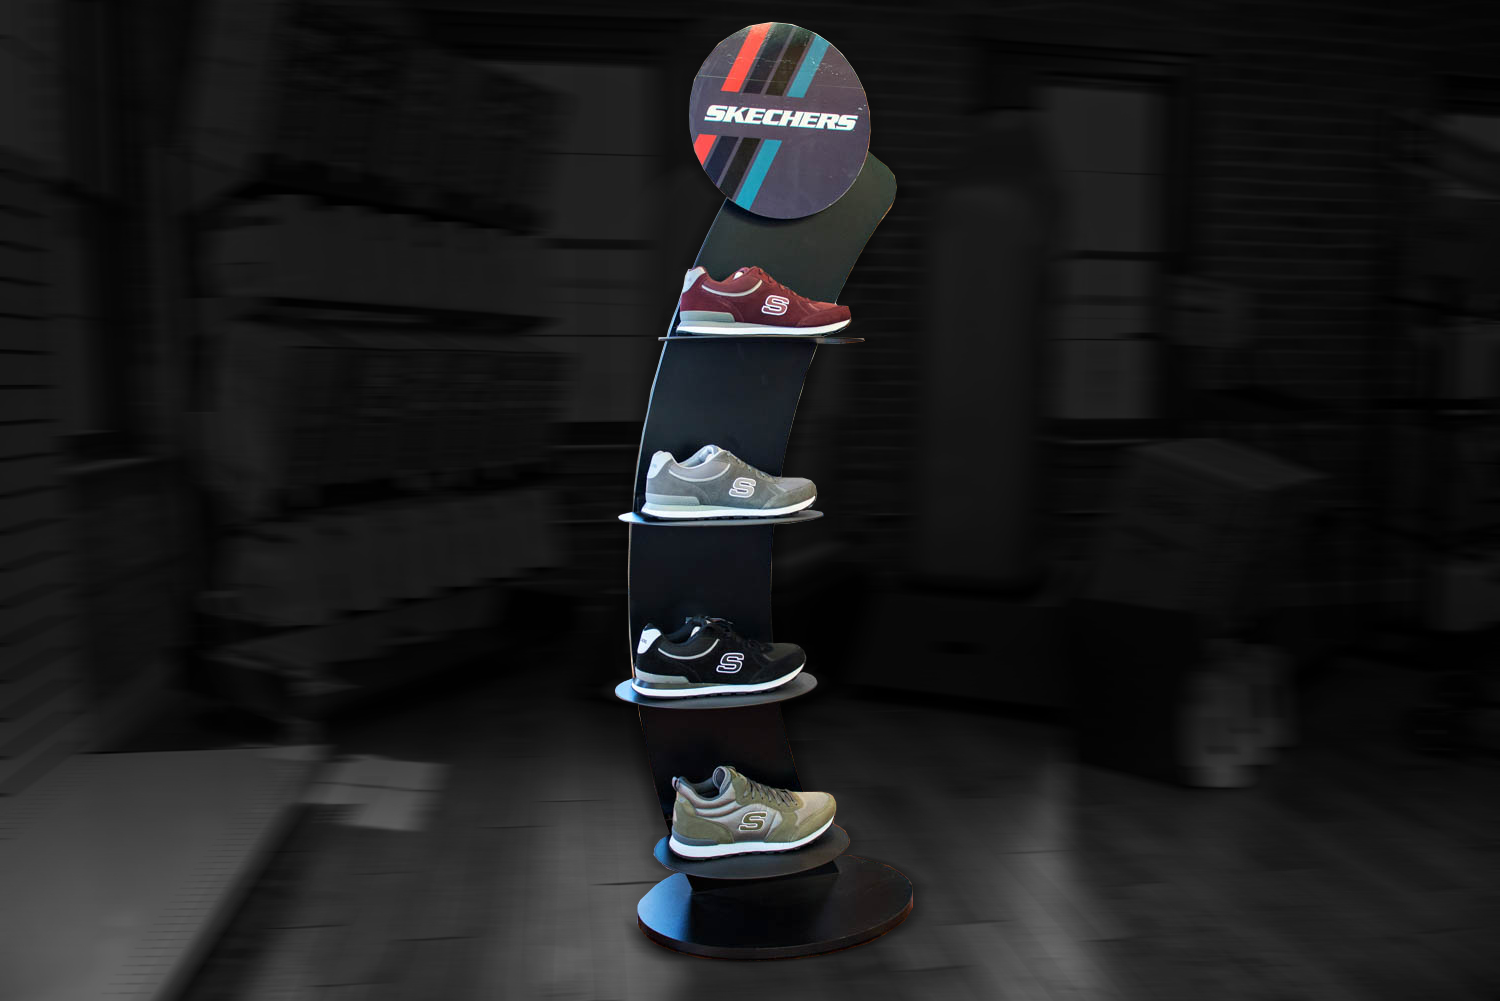 metaline-skechers point of purchase display